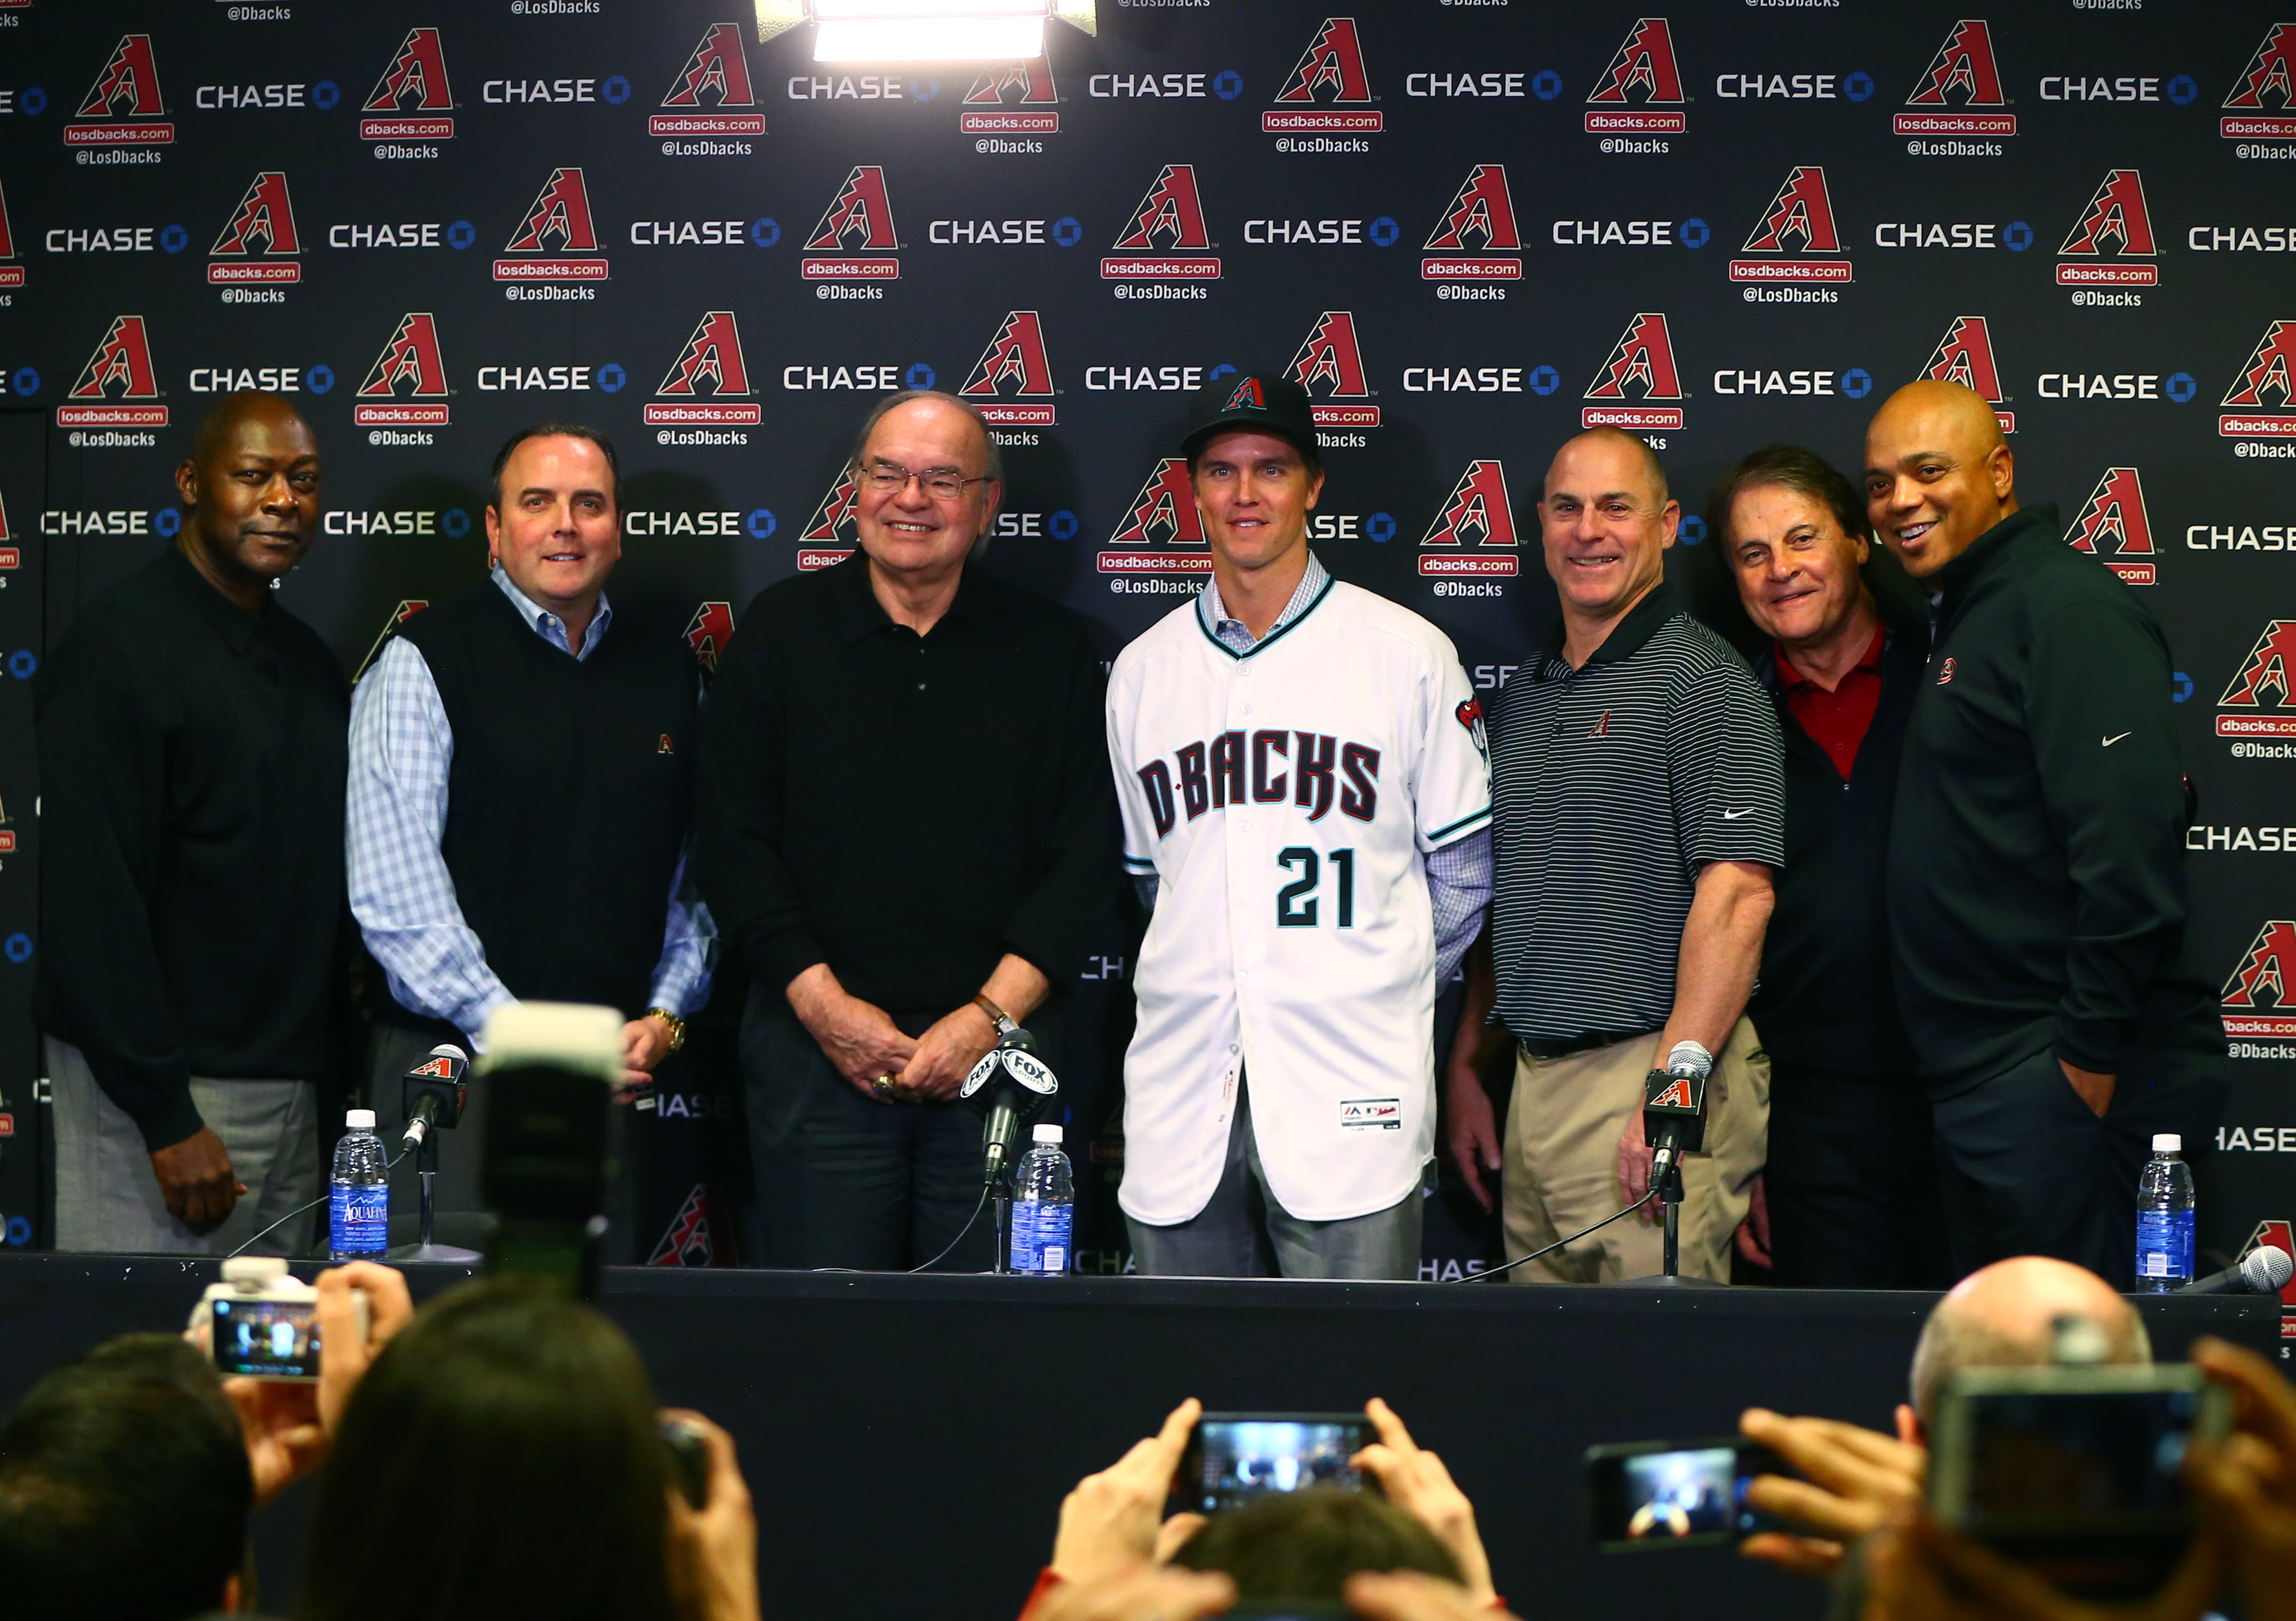 If you're a Dbacks fan living outside of Arizona, this could be potentially huge news for you.